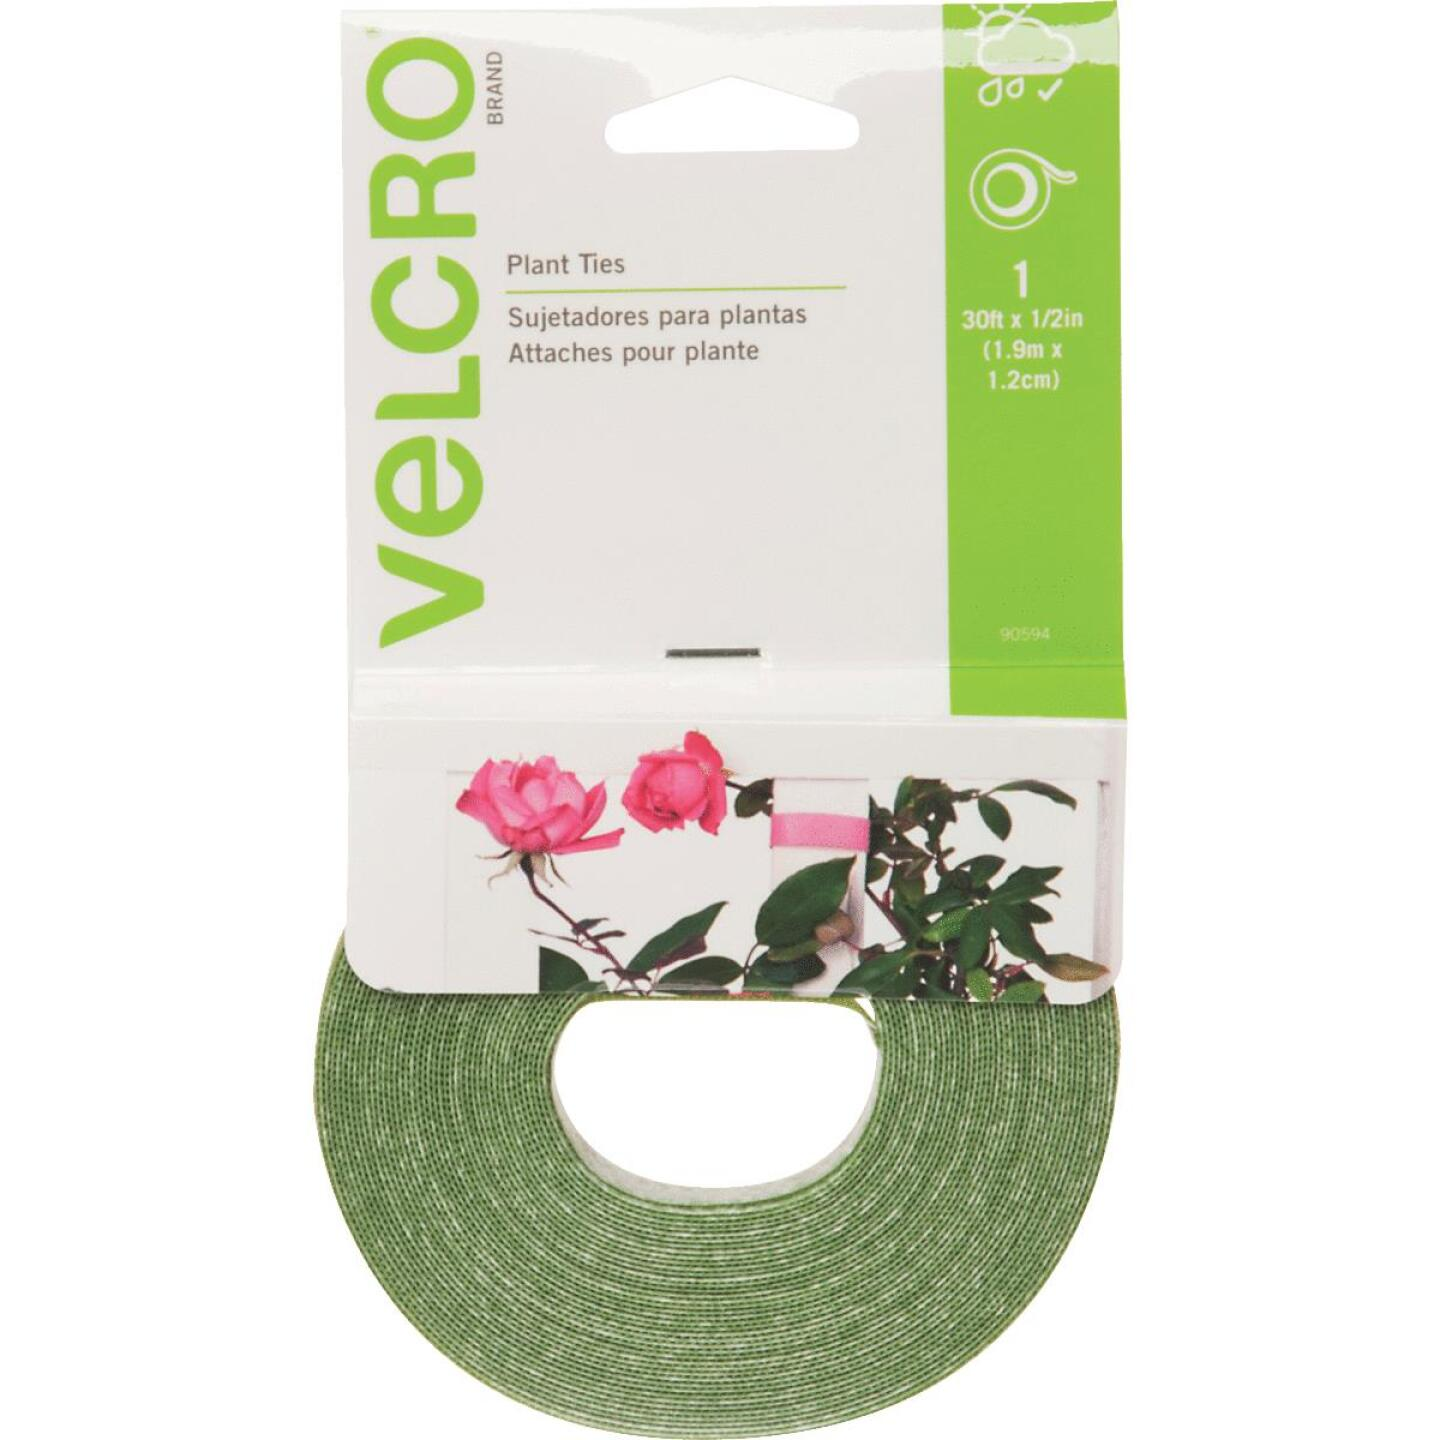 VELCRO Brand Green 30 Ft. Hook and Loop Plant Tie Image 1